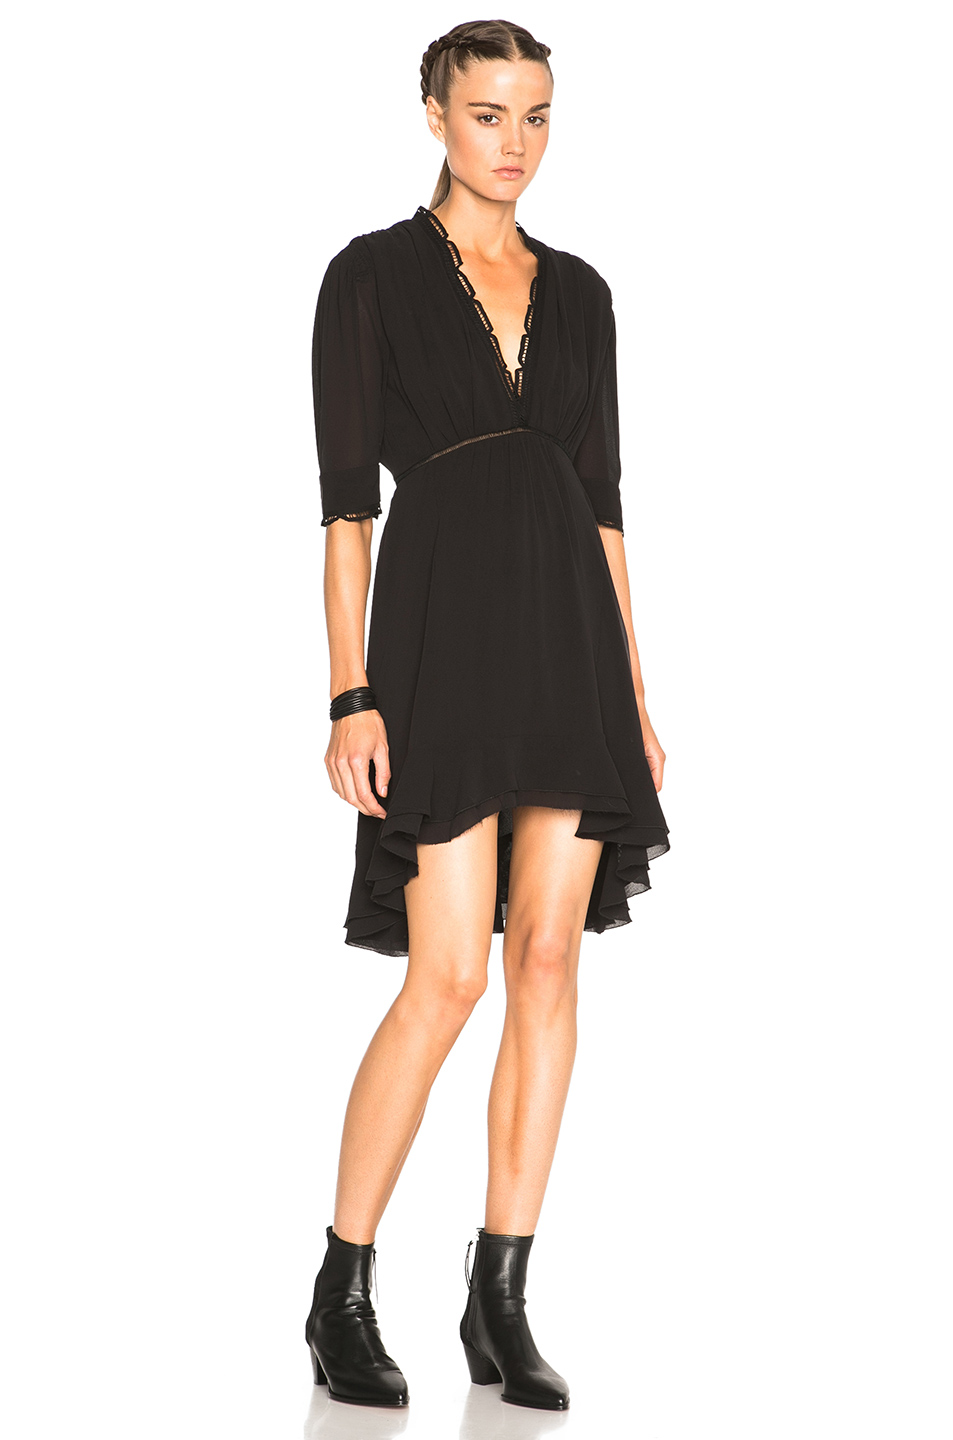 Photo of Isabel Marant Silk & Lace Quidor Dress in Black online sales